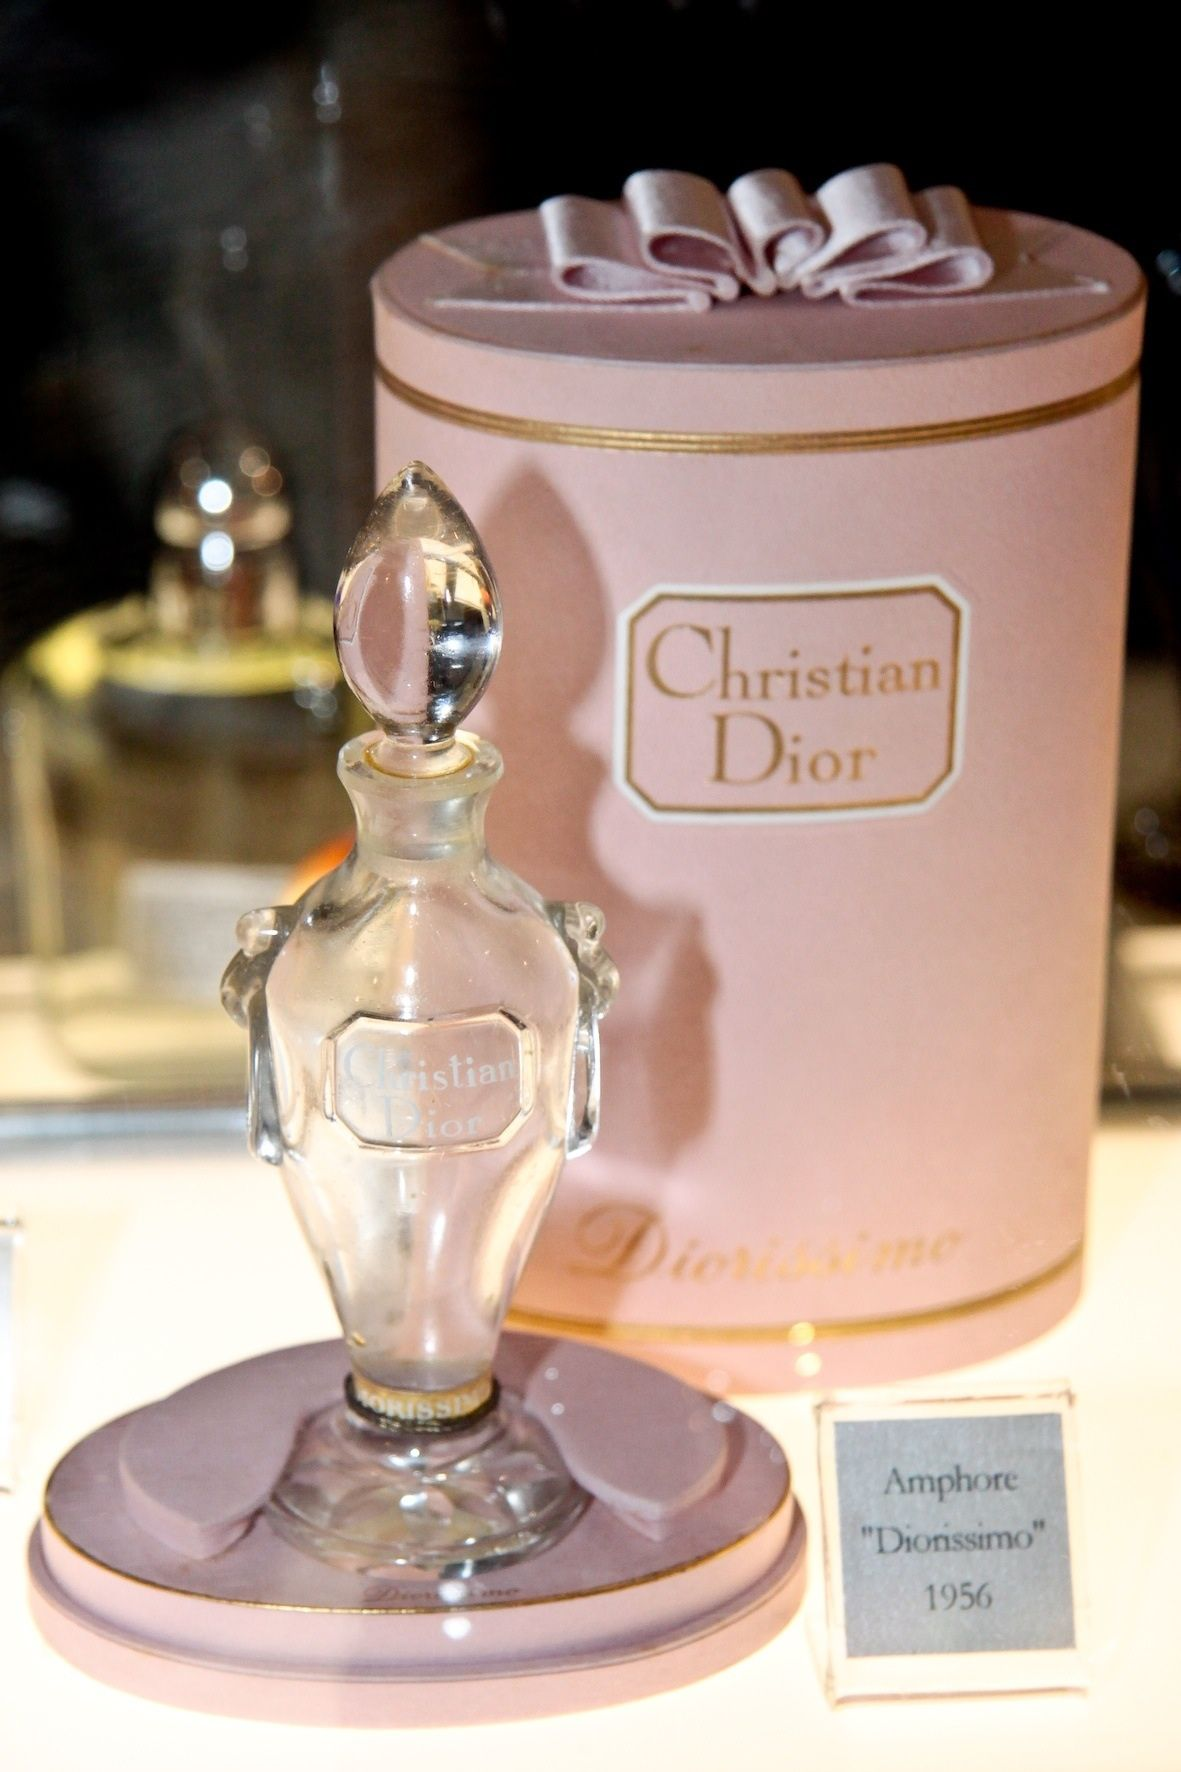 b004cdb0850 Christian Dior ❤❦♪♫ ROUND TALL HAT BOX LIKE CANISTER DIY STYLE HIGH END  INSIGNIA S.